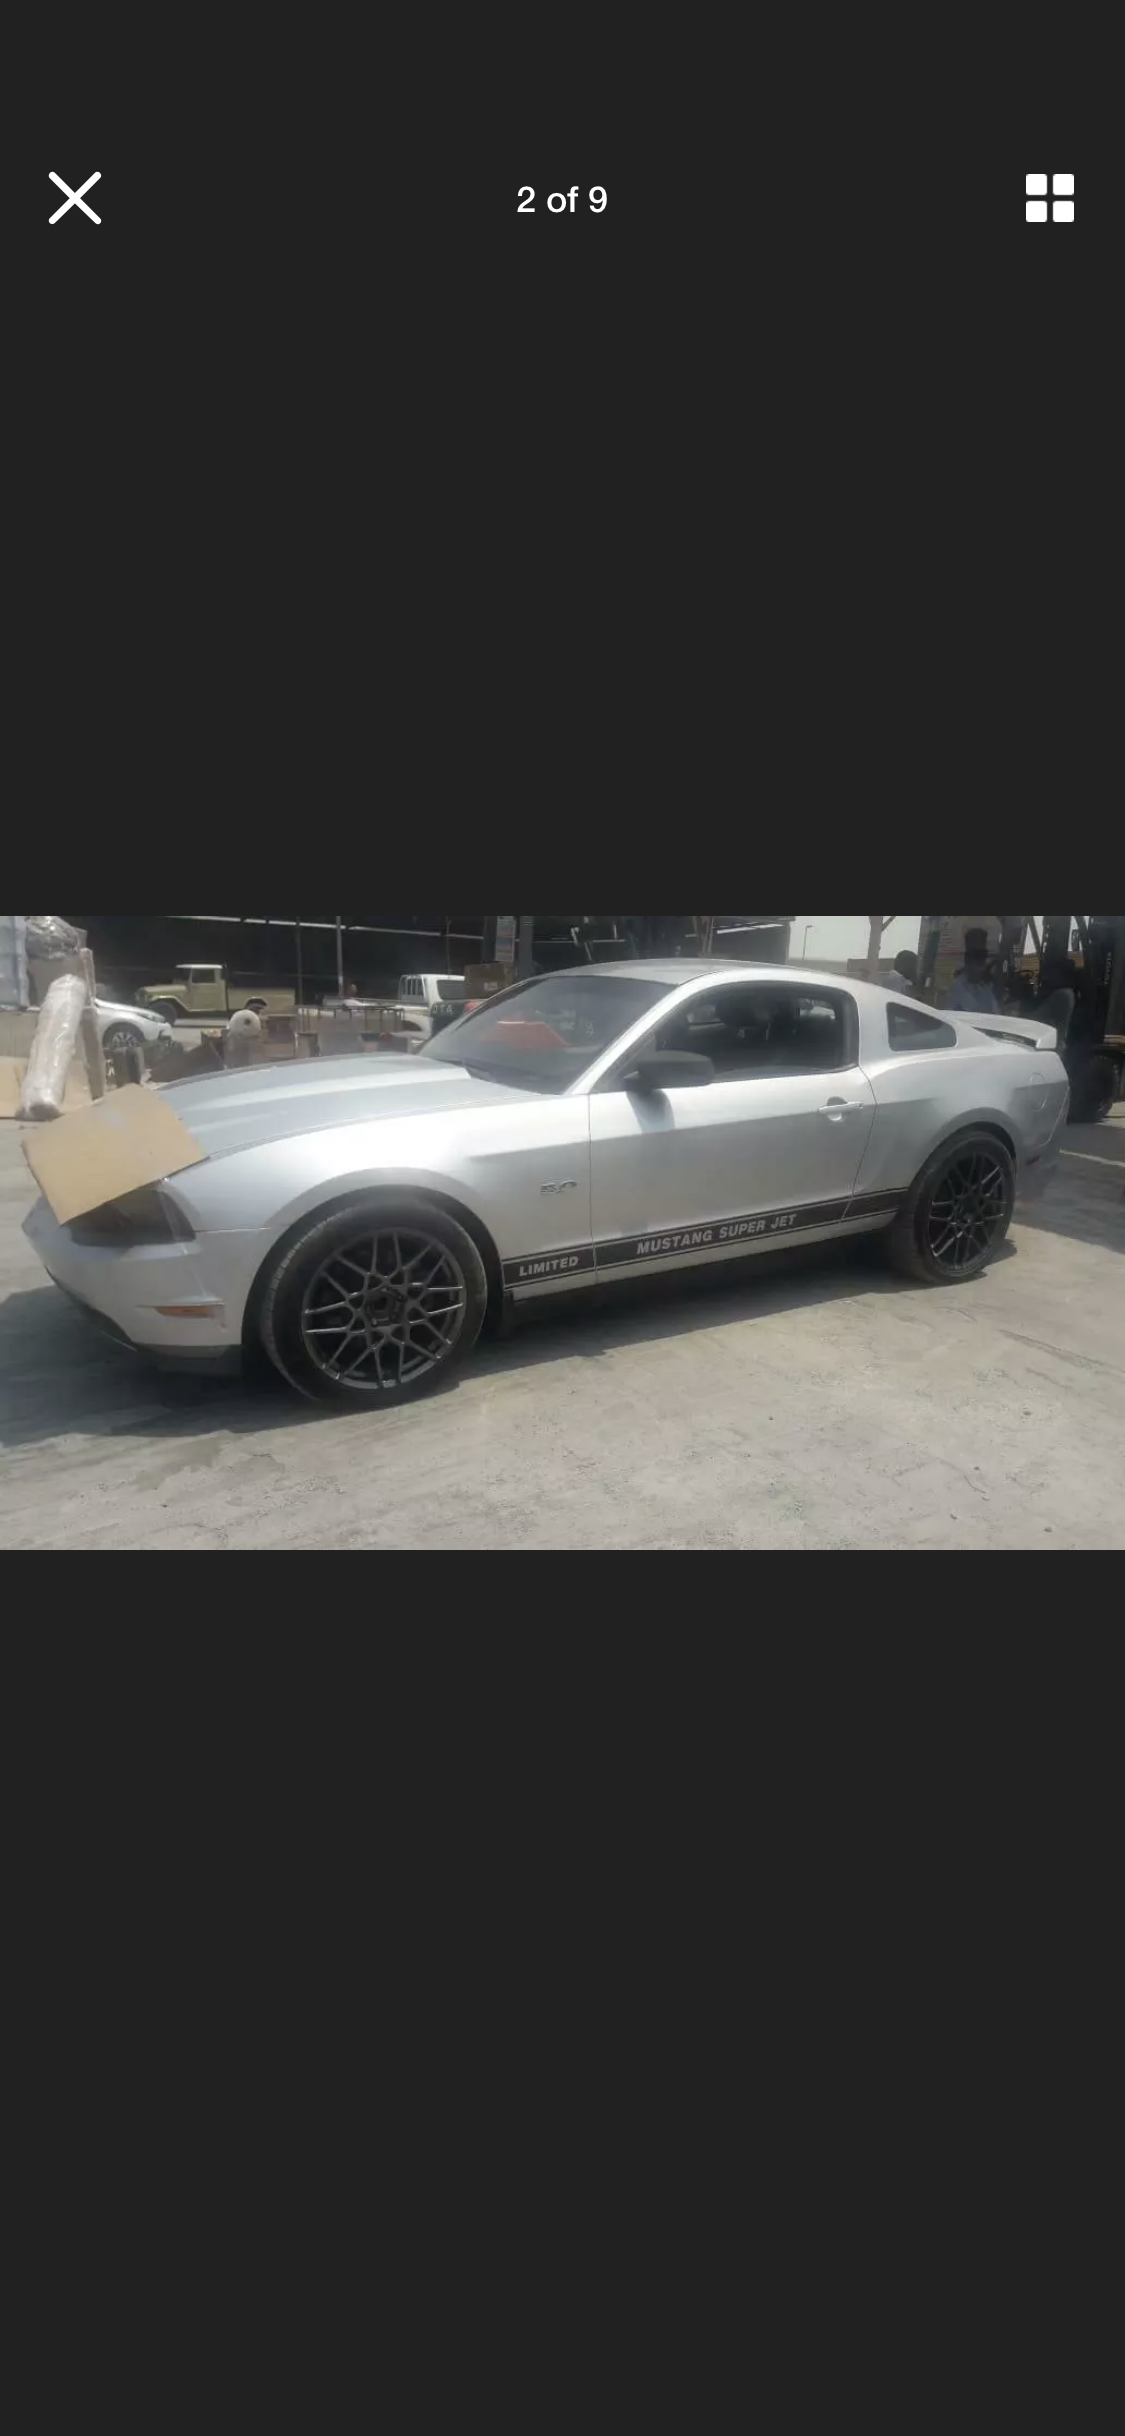 2012 FORD MUSTANG 5.0 V8 GT AUTO  LHD FRESH IMPORT For Sale (picture 2 of 6)